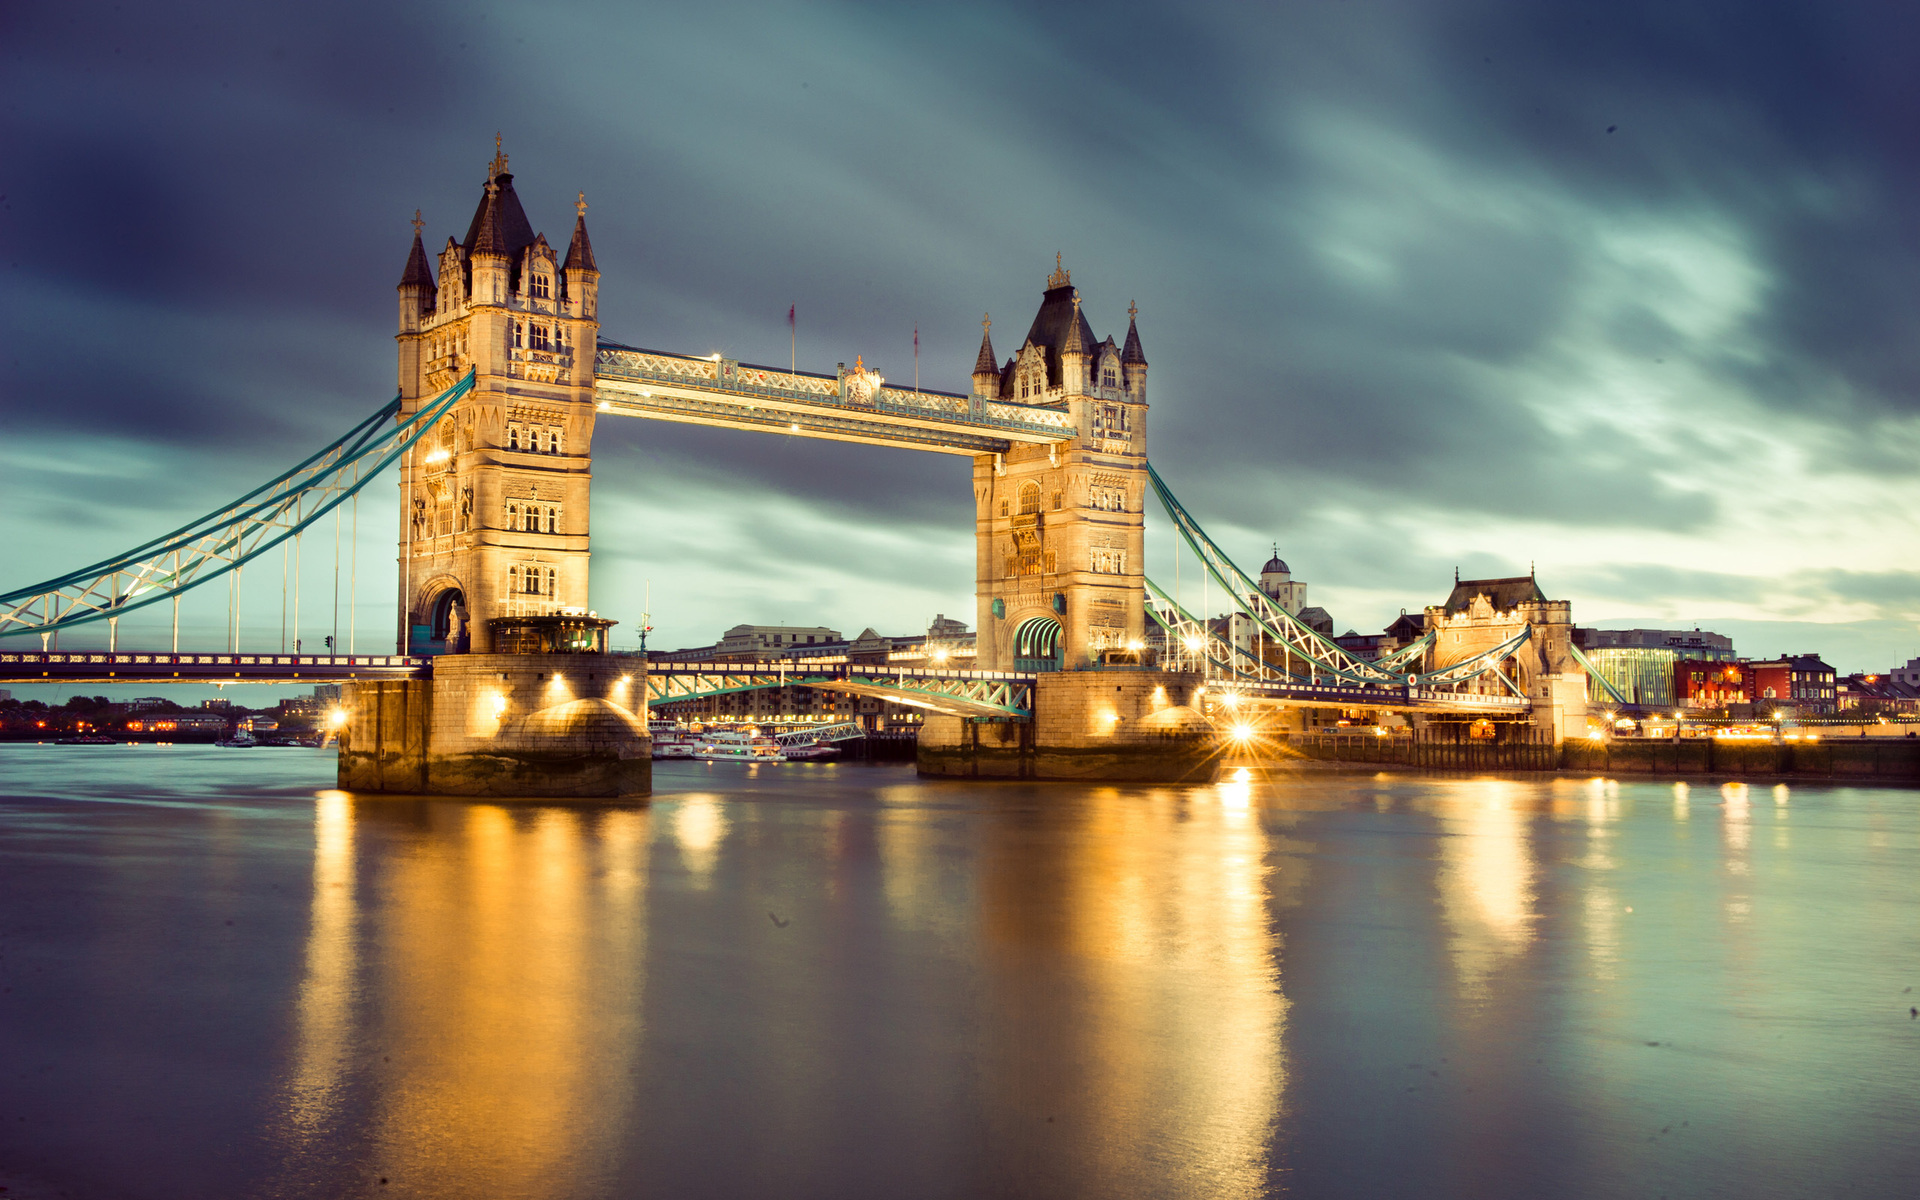 Live Animated Wallpapers For Windows 7 Uk Wallpapers Wallpaper Zone